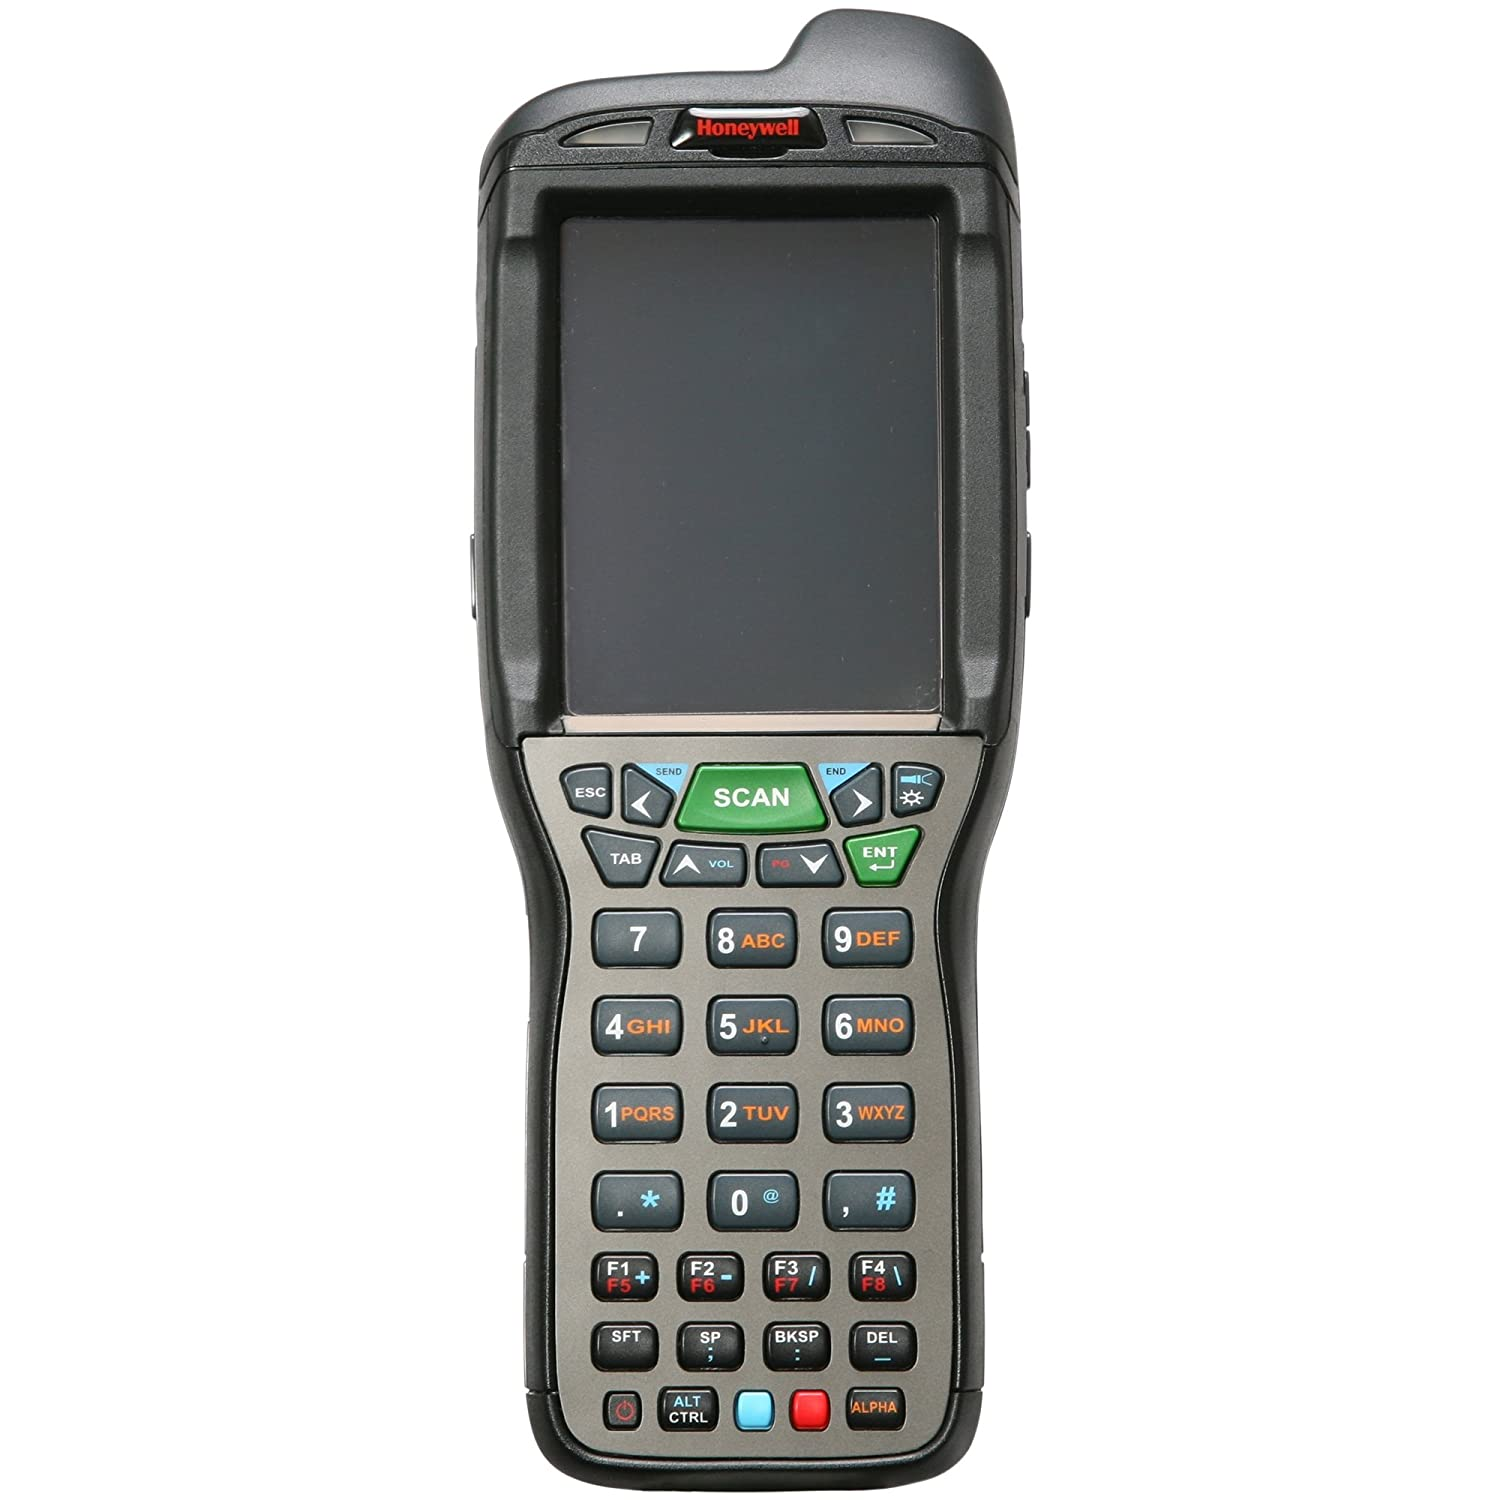 Honeywell 99EXL01-0C212SE Series Dolphin 99EX Hand Held Mobile Computer, Bluetooth, 34 Key, Camera, 256 MB x 1 GB, WEH 6.5 Classic, Standard Battery